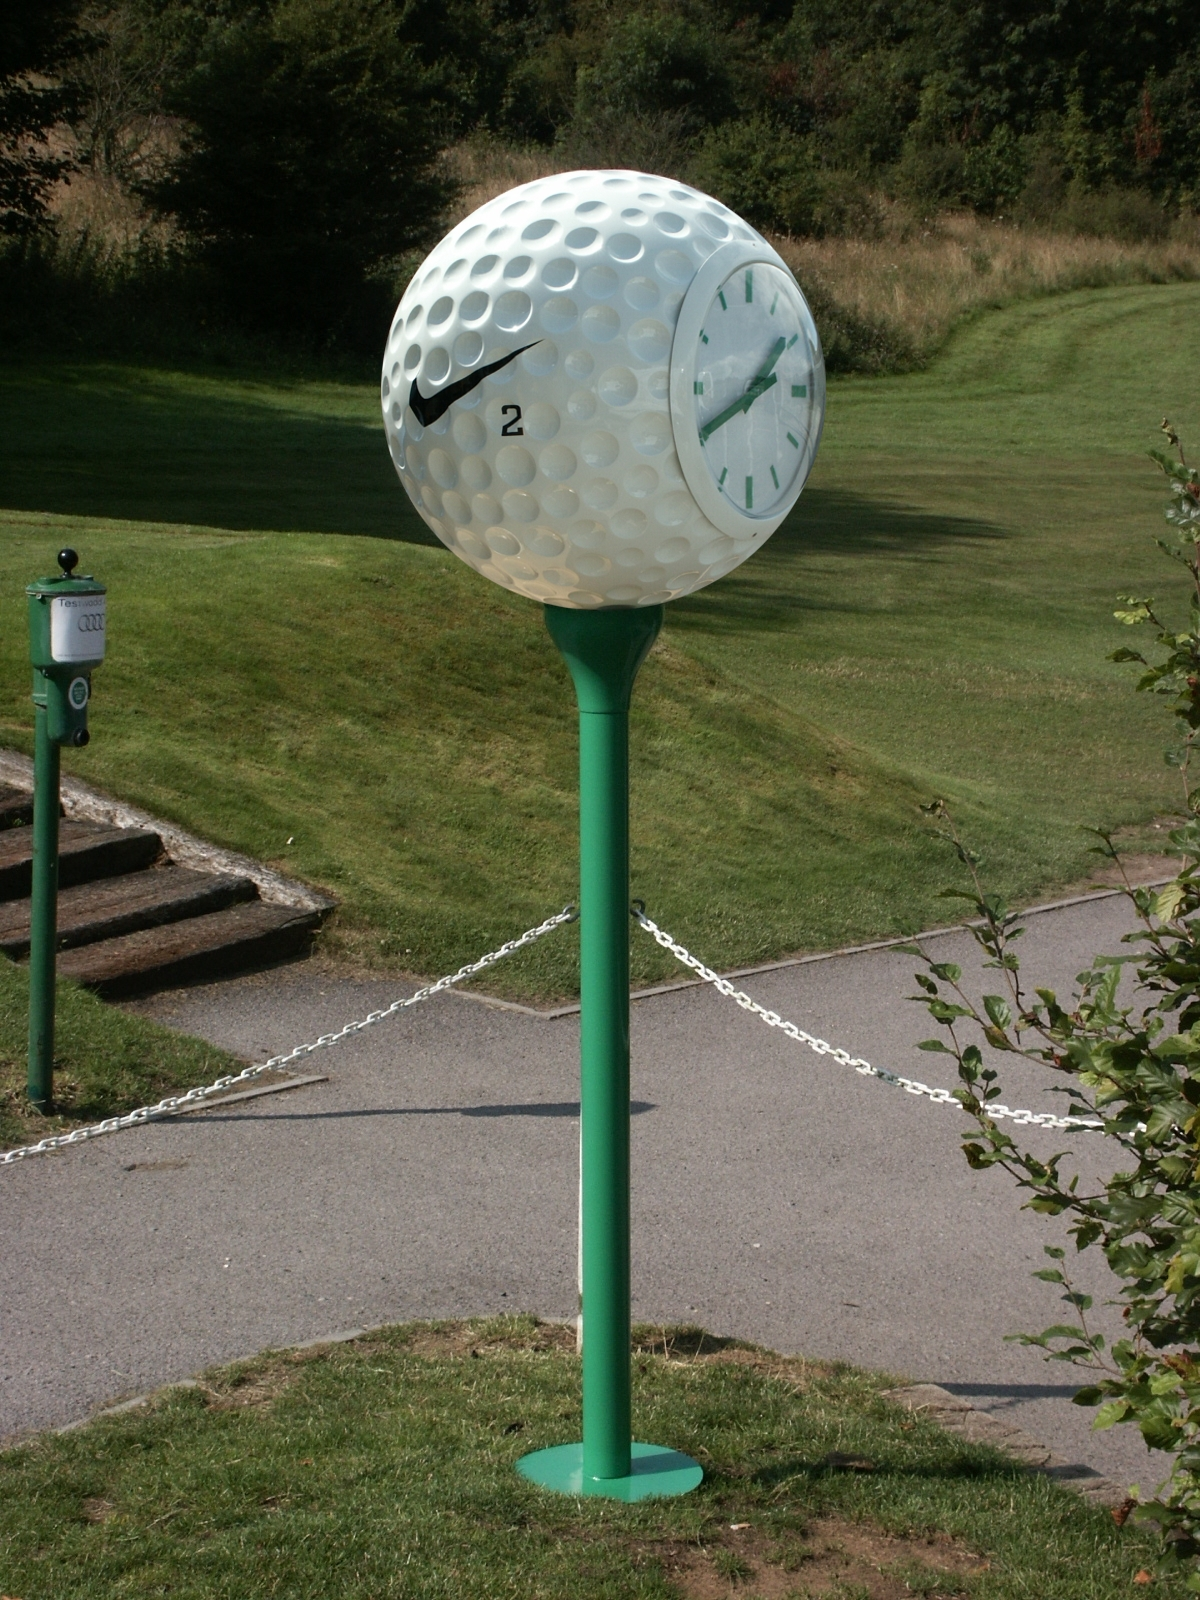 Promotional clock on golf course